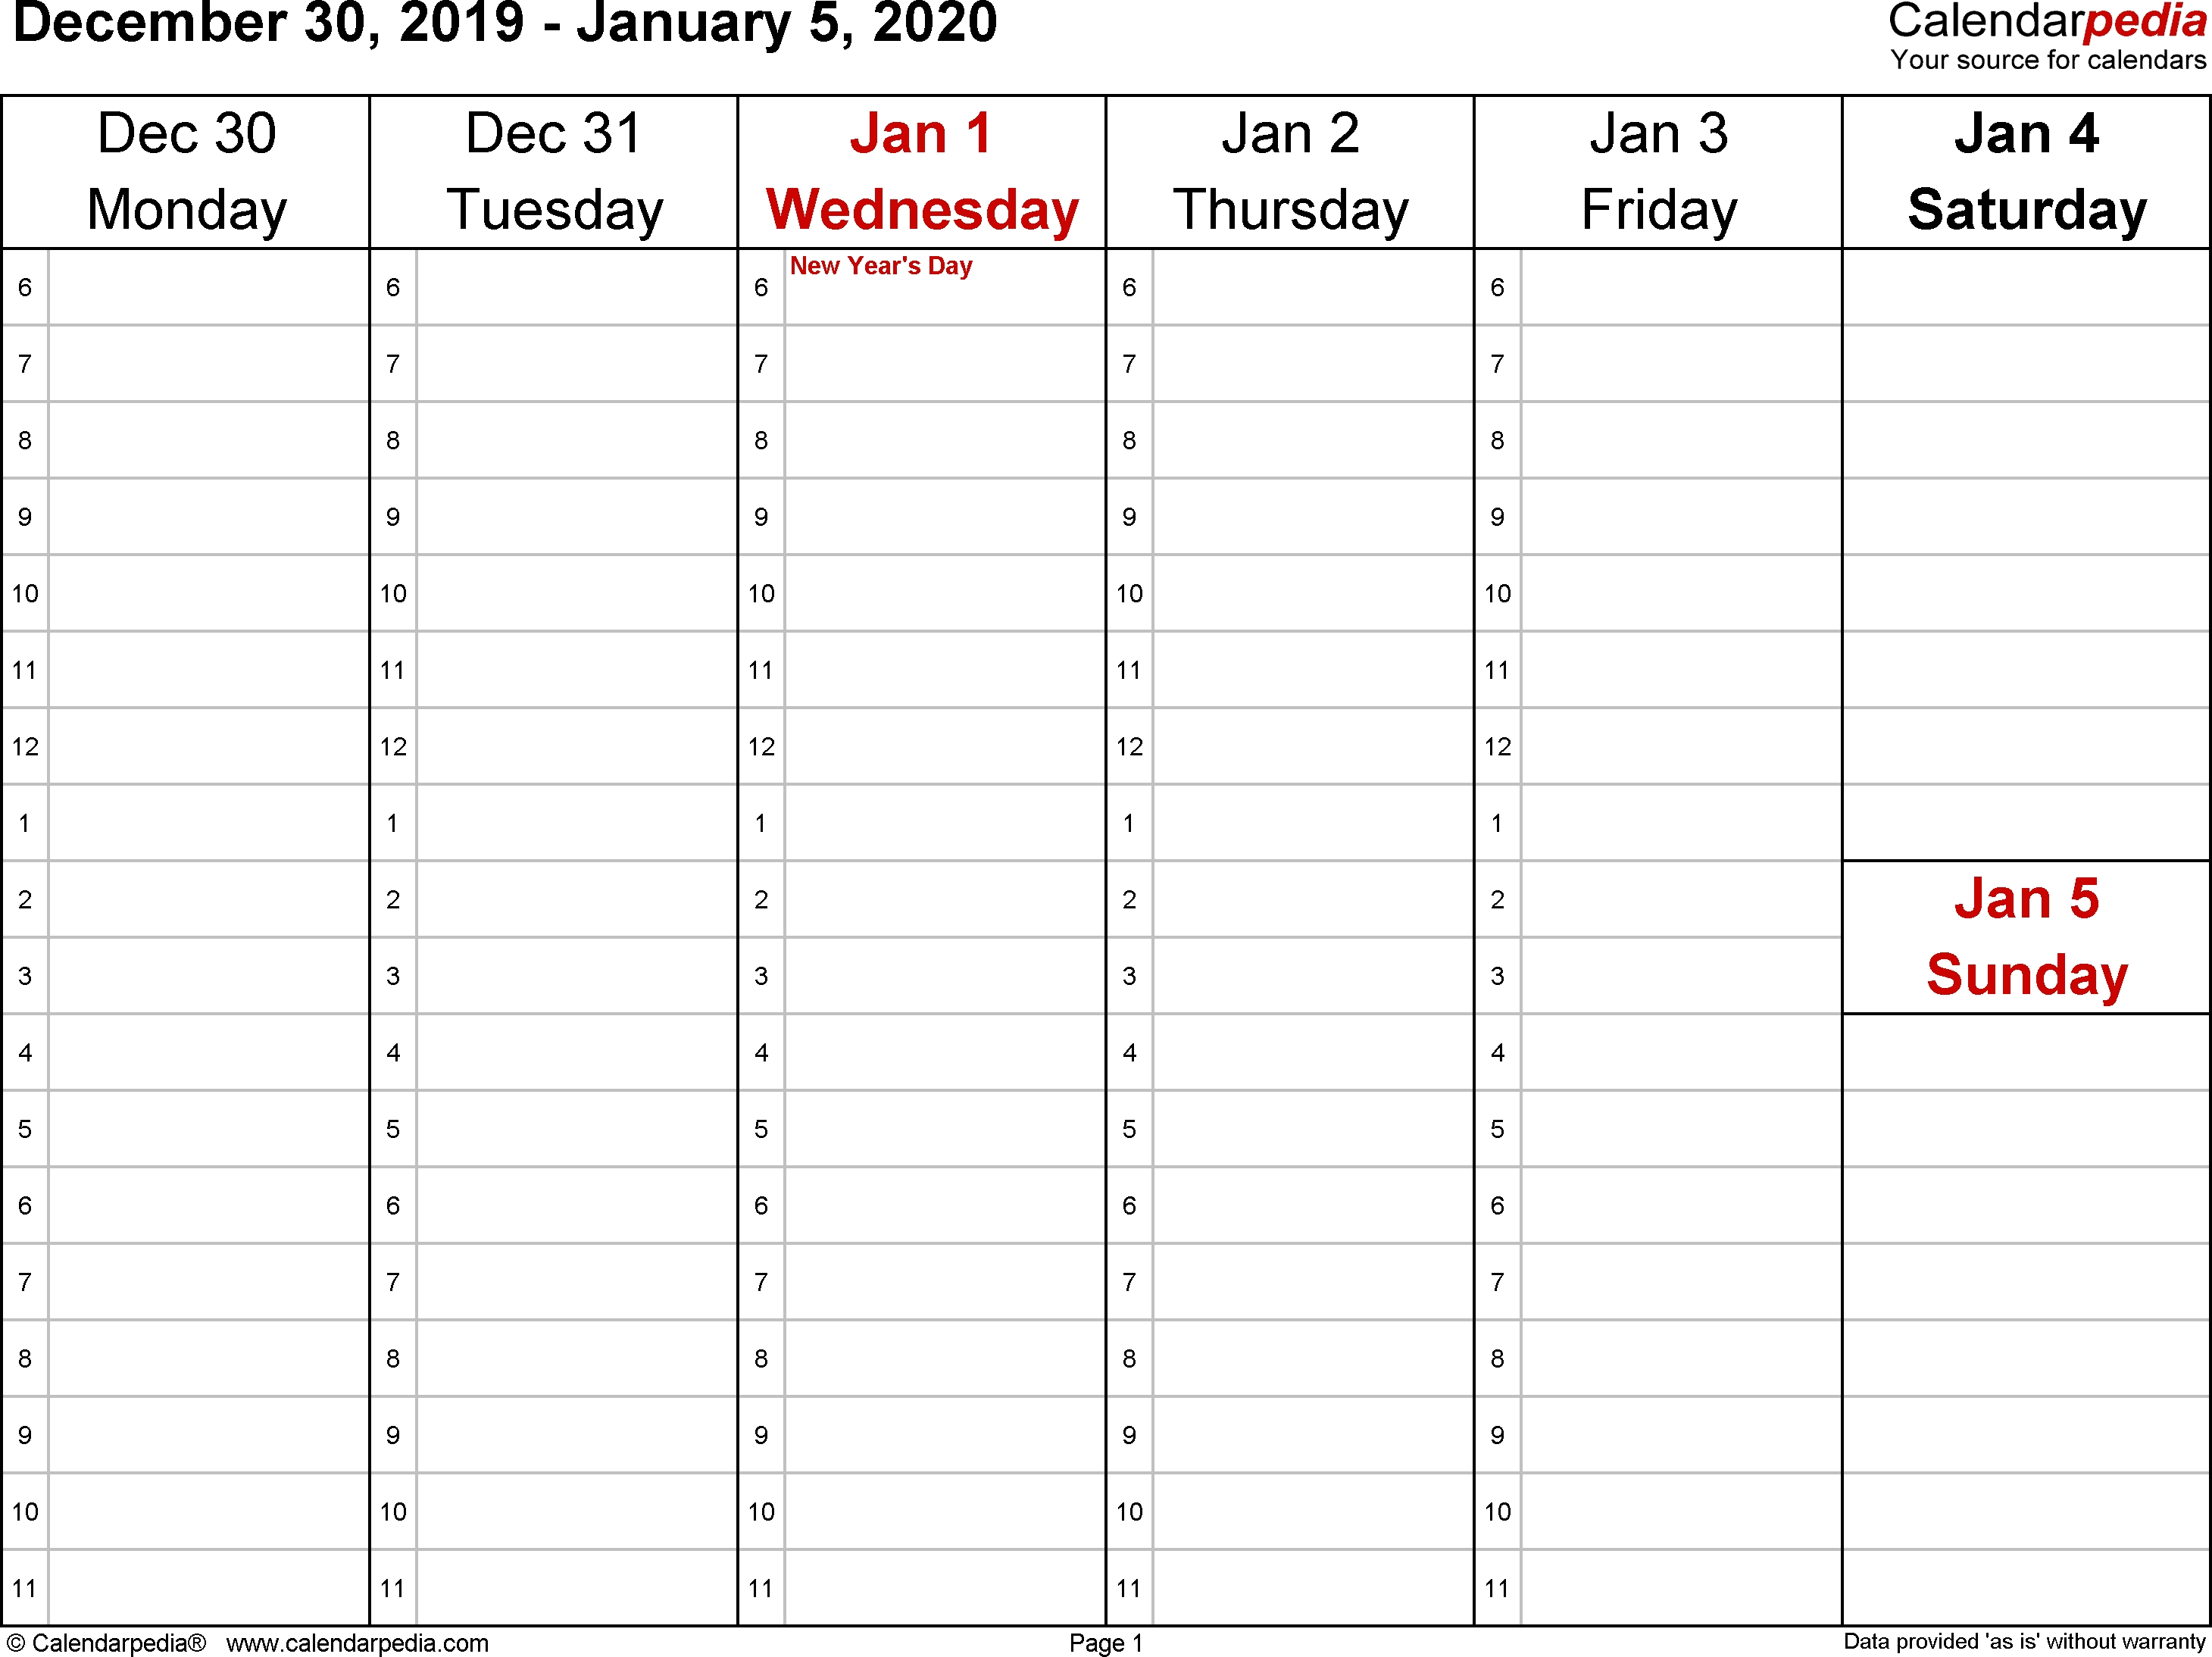 Weekly Calendar 2020 For Excel - 12 Free Printable Templates with regard to Calender 2020 Template Monday To Sunday